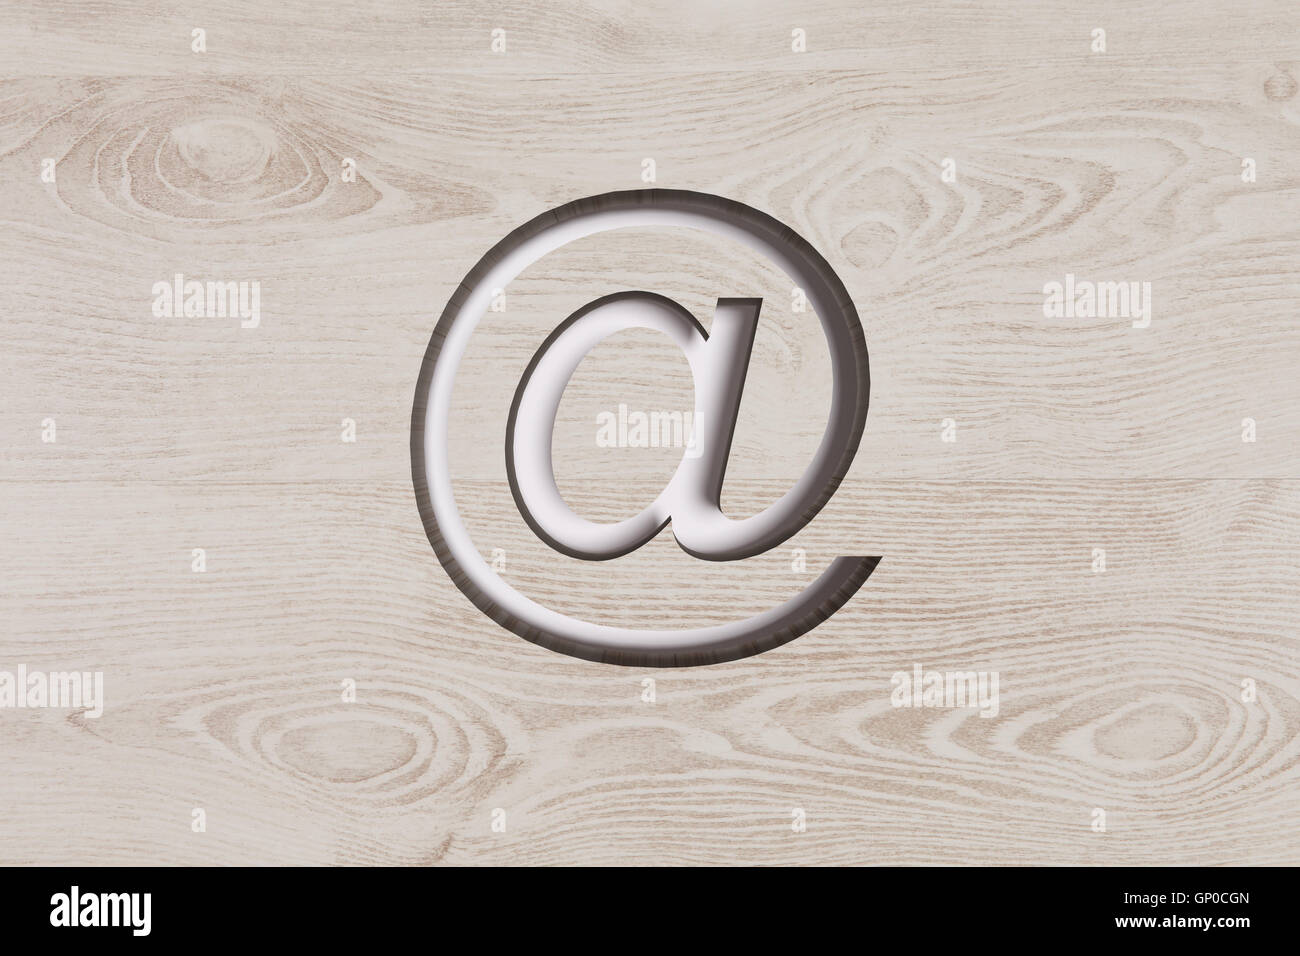 3d Rendering Of At Symbol On Wooden Background Stock Photo